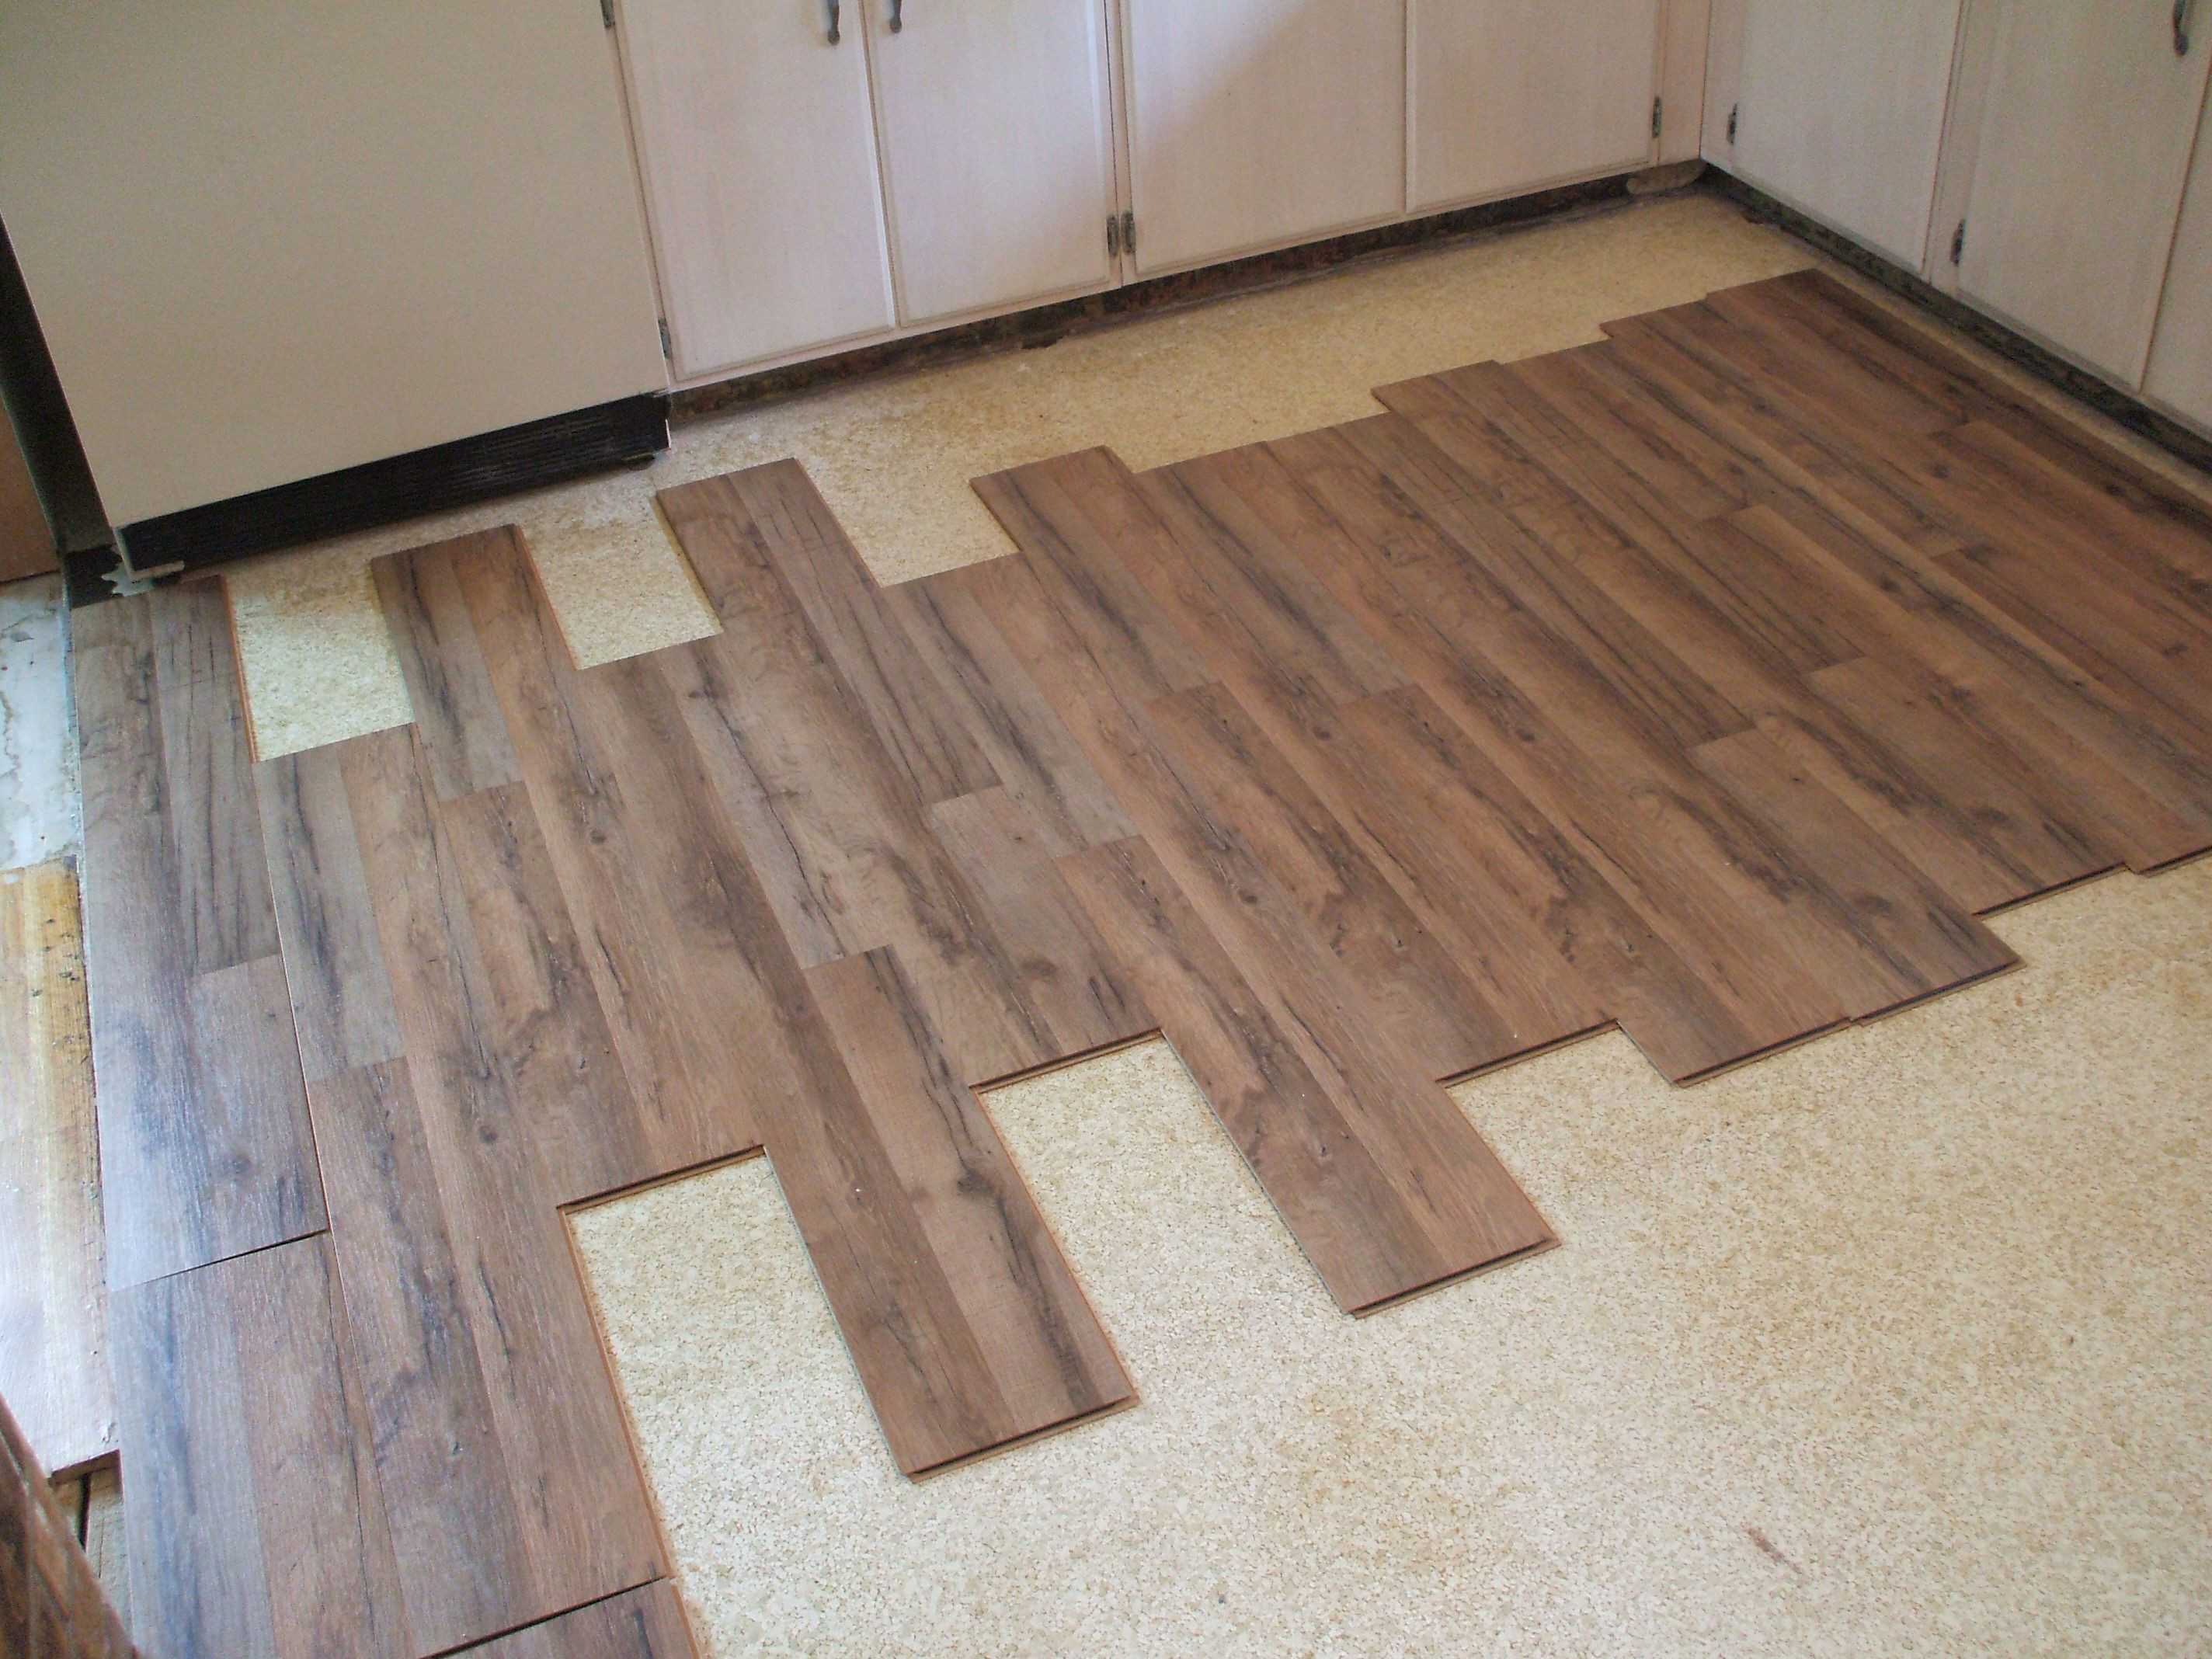 13 Ideal 3 8 Engineered Hardwood Flooring Installation 2021 free download 3 8 engineered hardwood flooring installation of laminate flooring installation made easy in installing laminate eyeballing layout 56a49d075f9b58b7d0d7d693 jpg